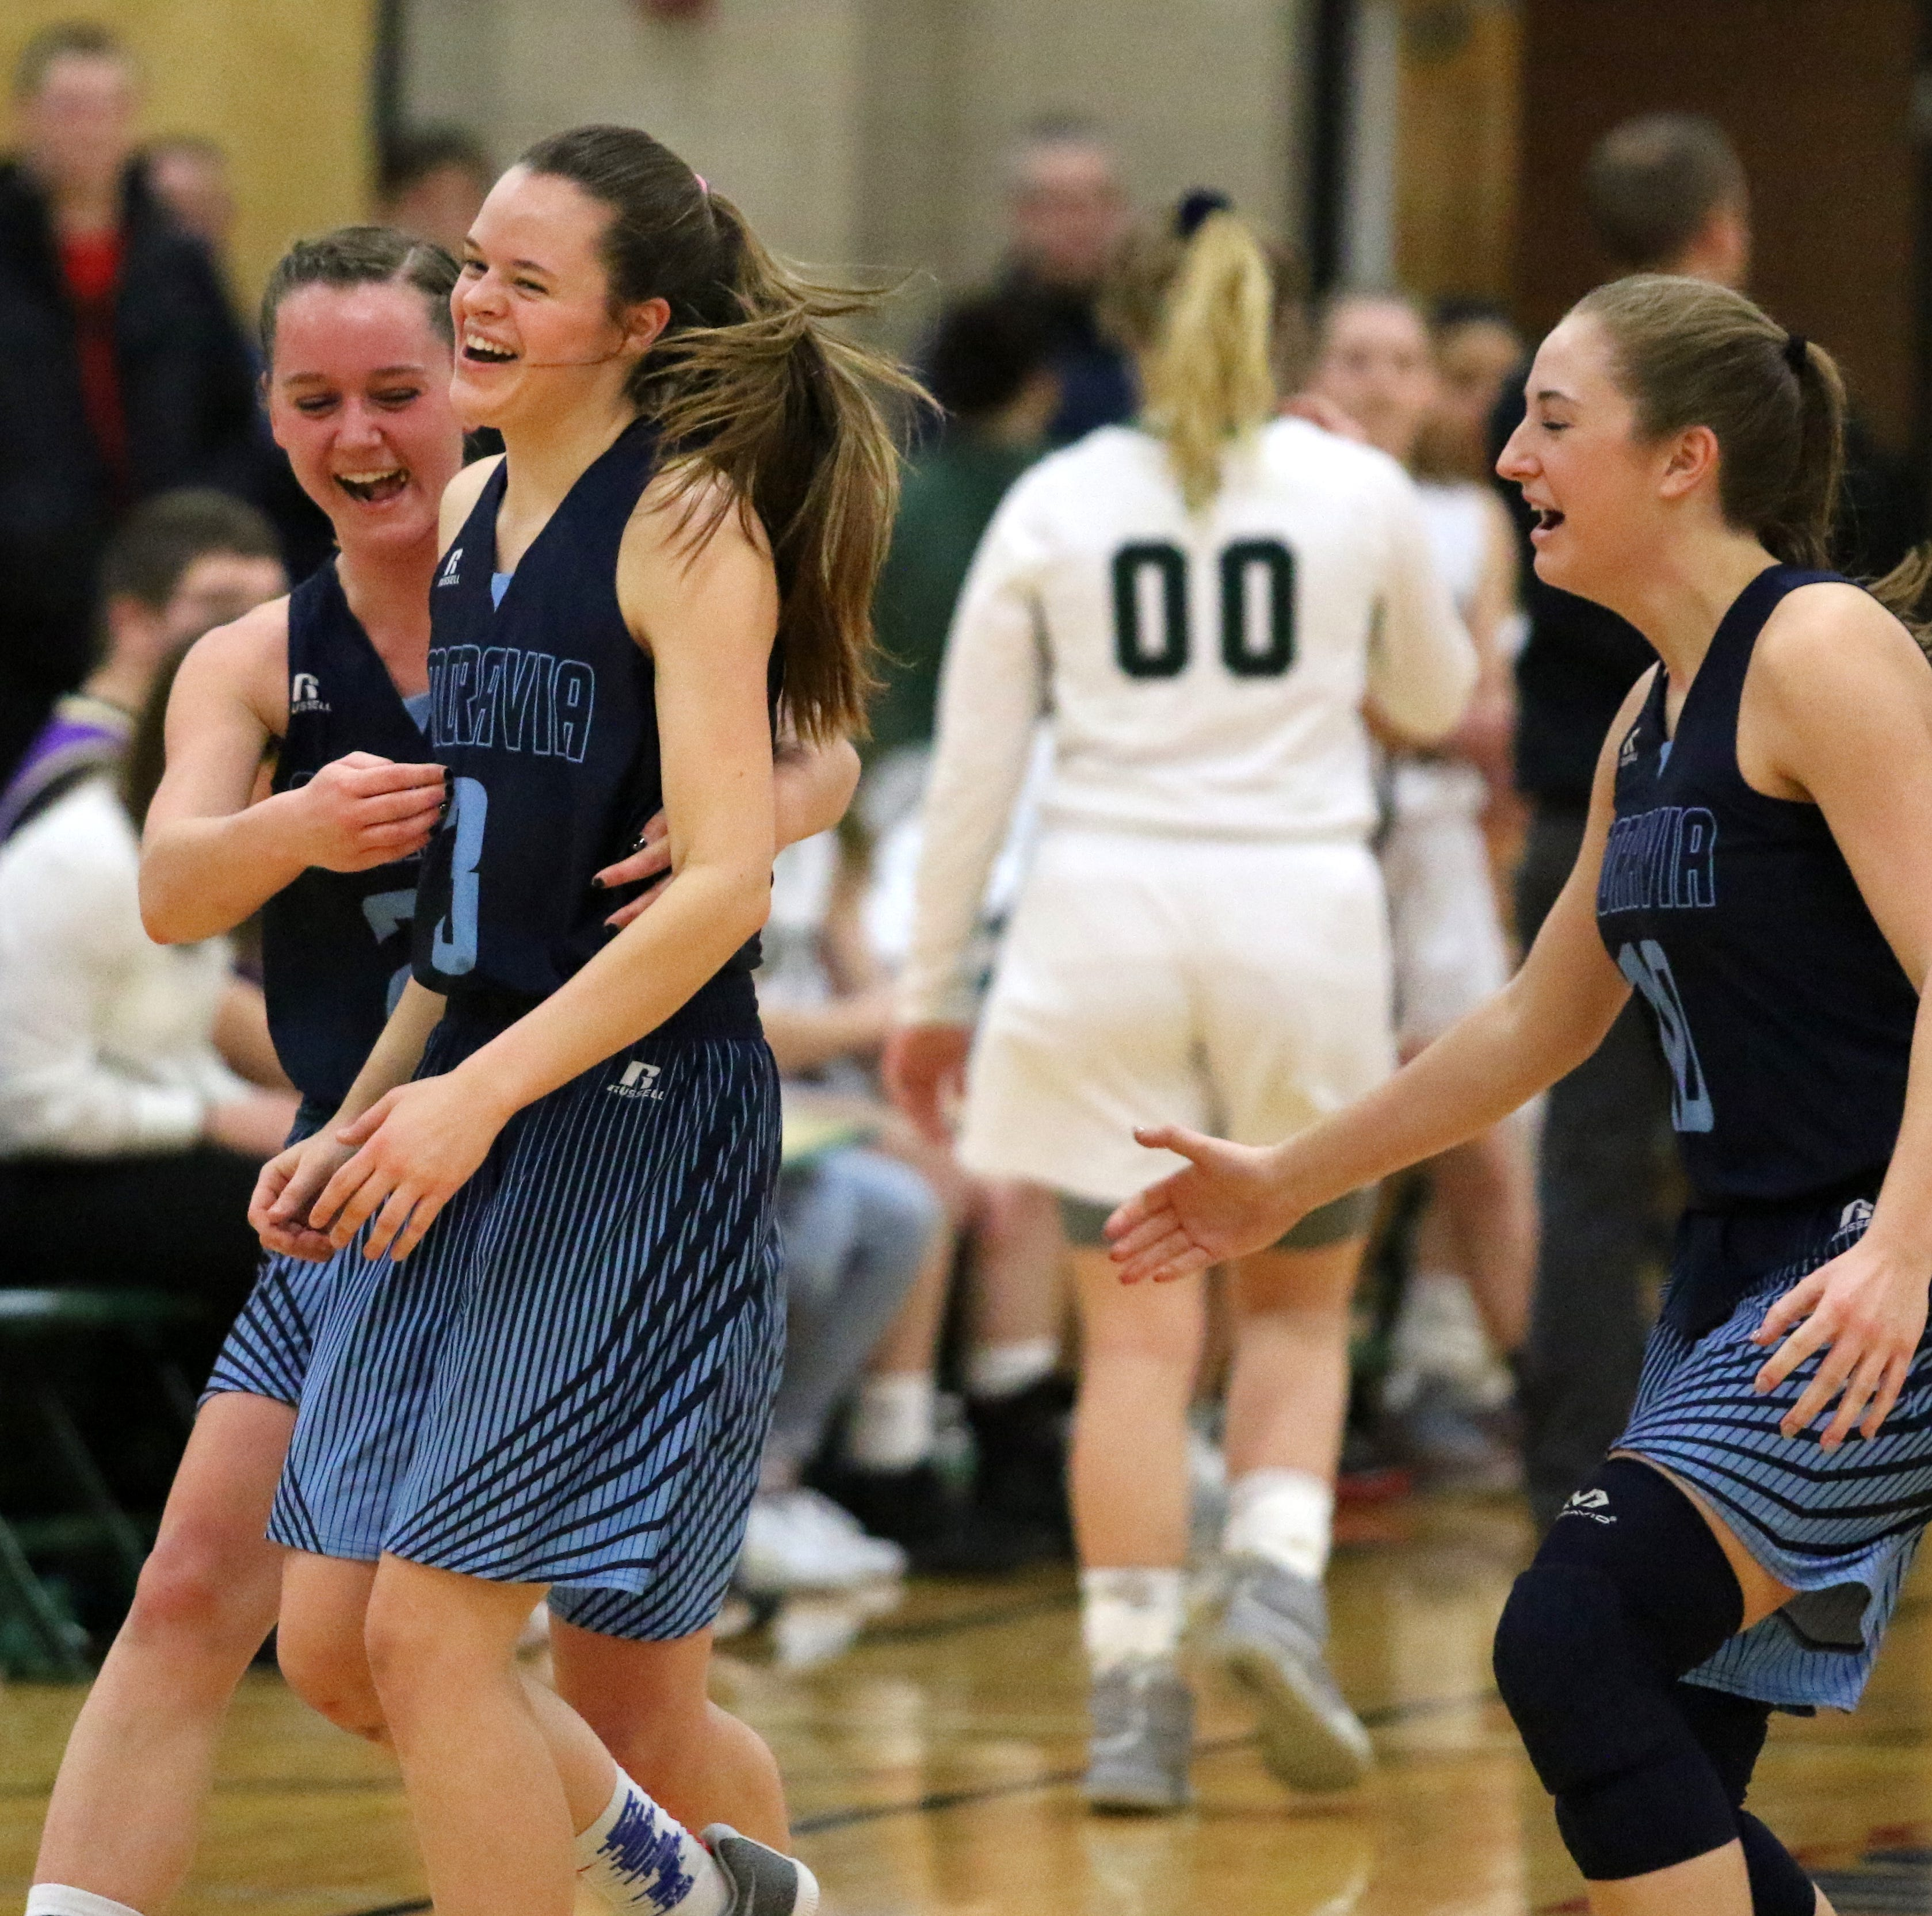 Girls basketball: Moravia avenges loss to Newfield, earns fifth straight IAC crown